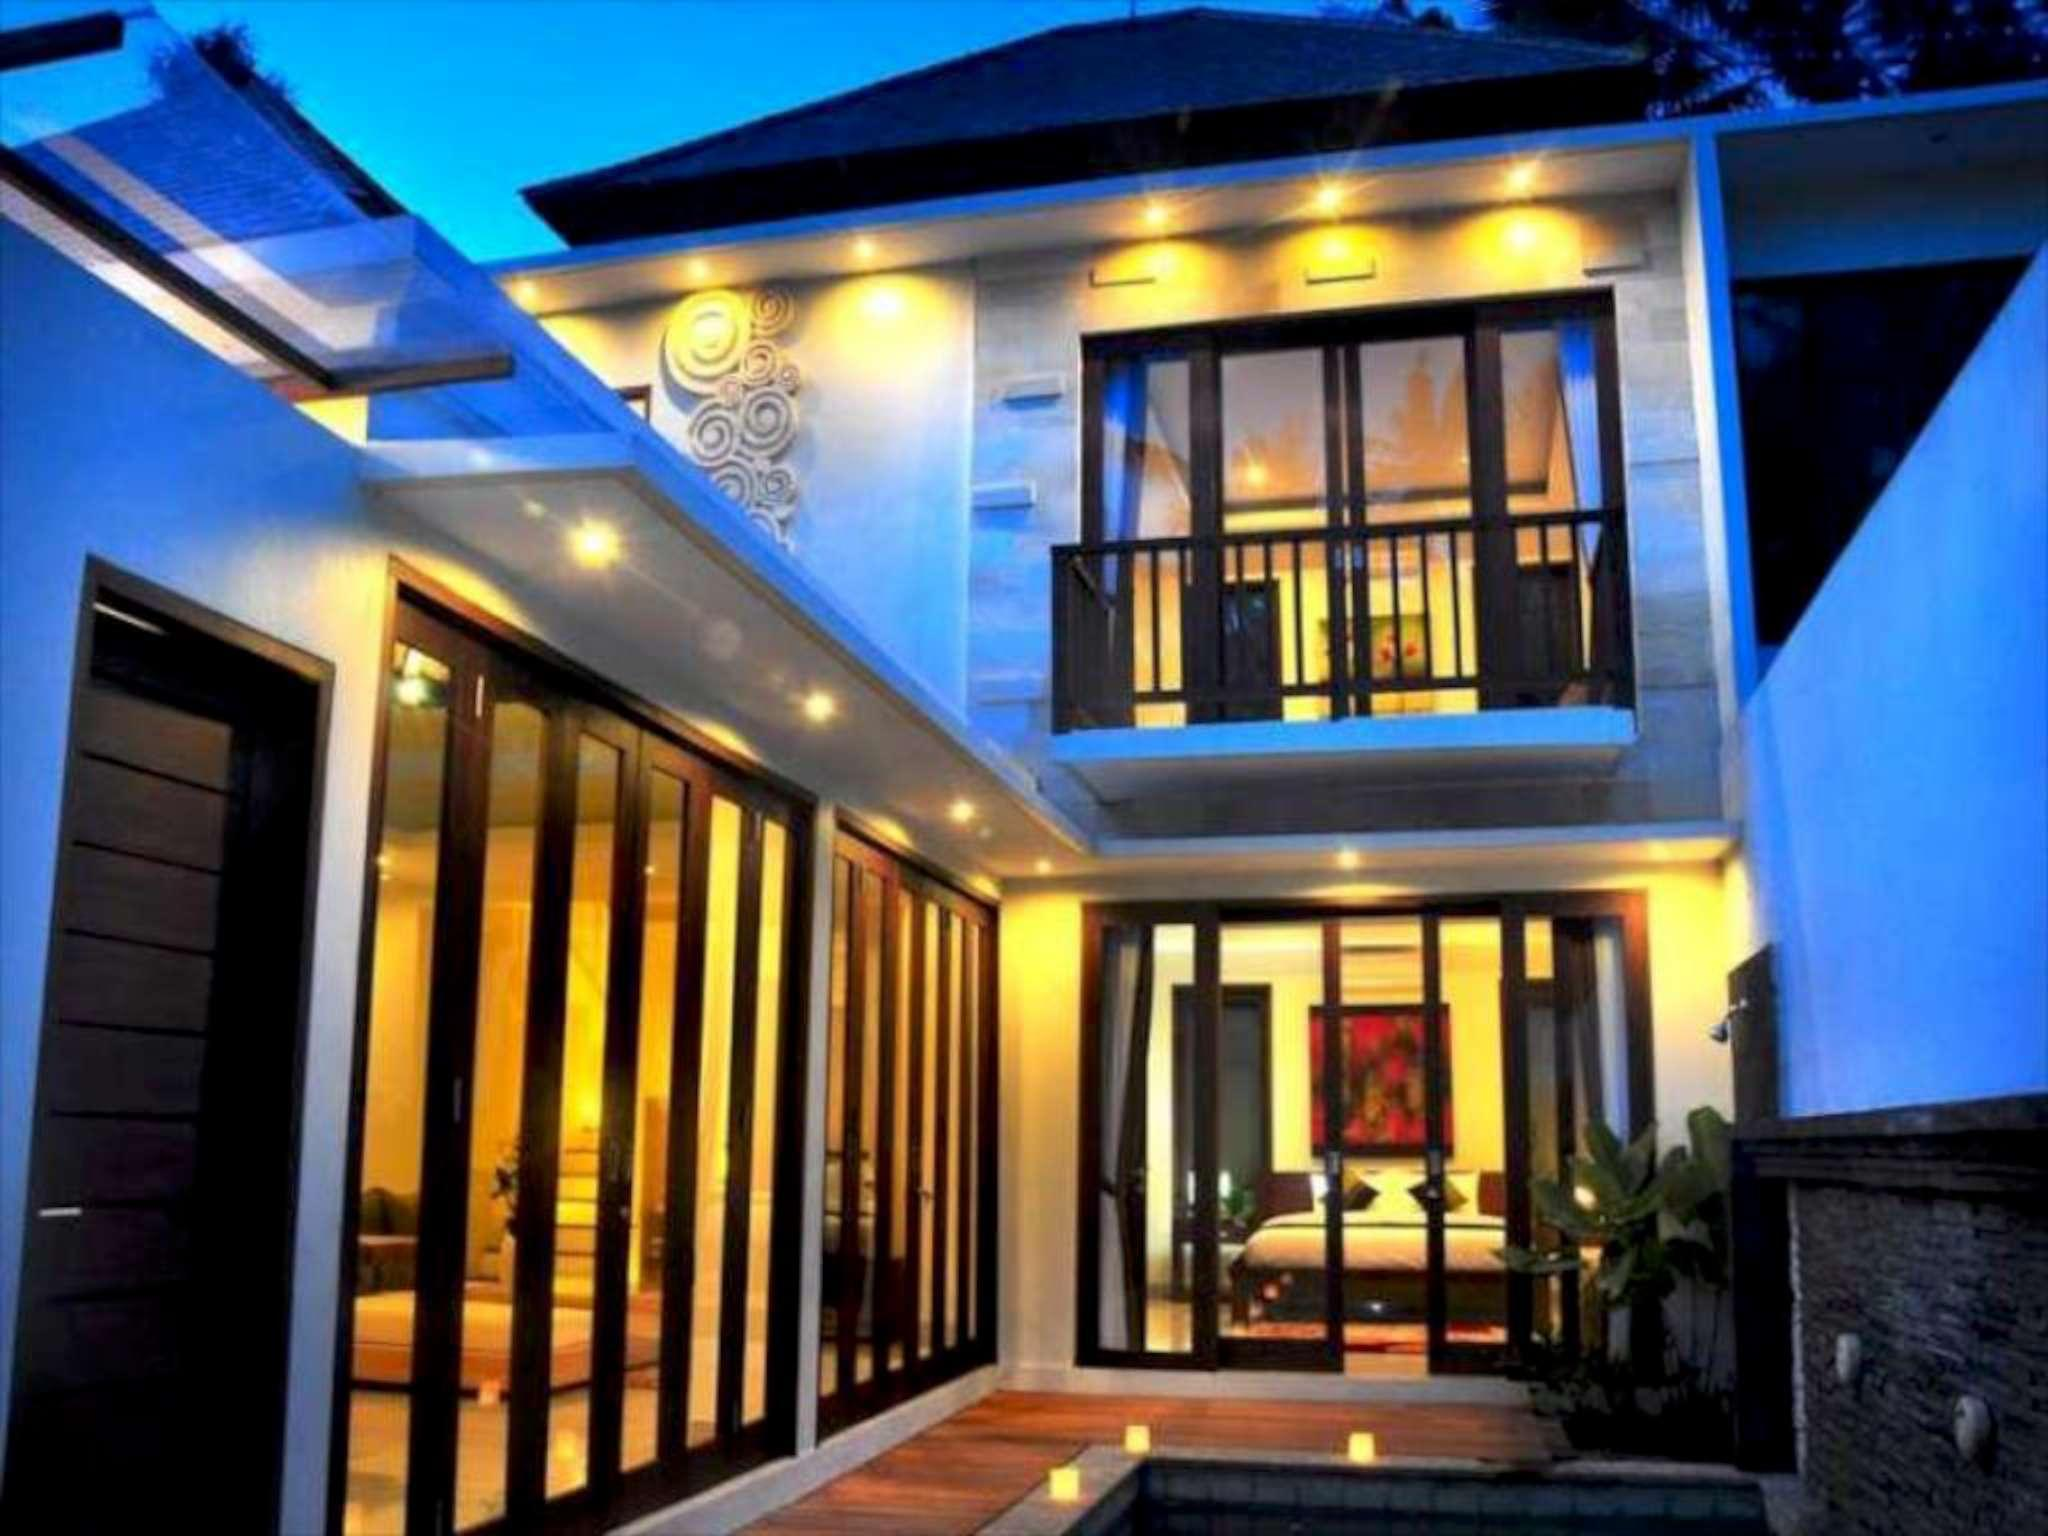 2BDR Modern Villa With Private Pool In Ubud